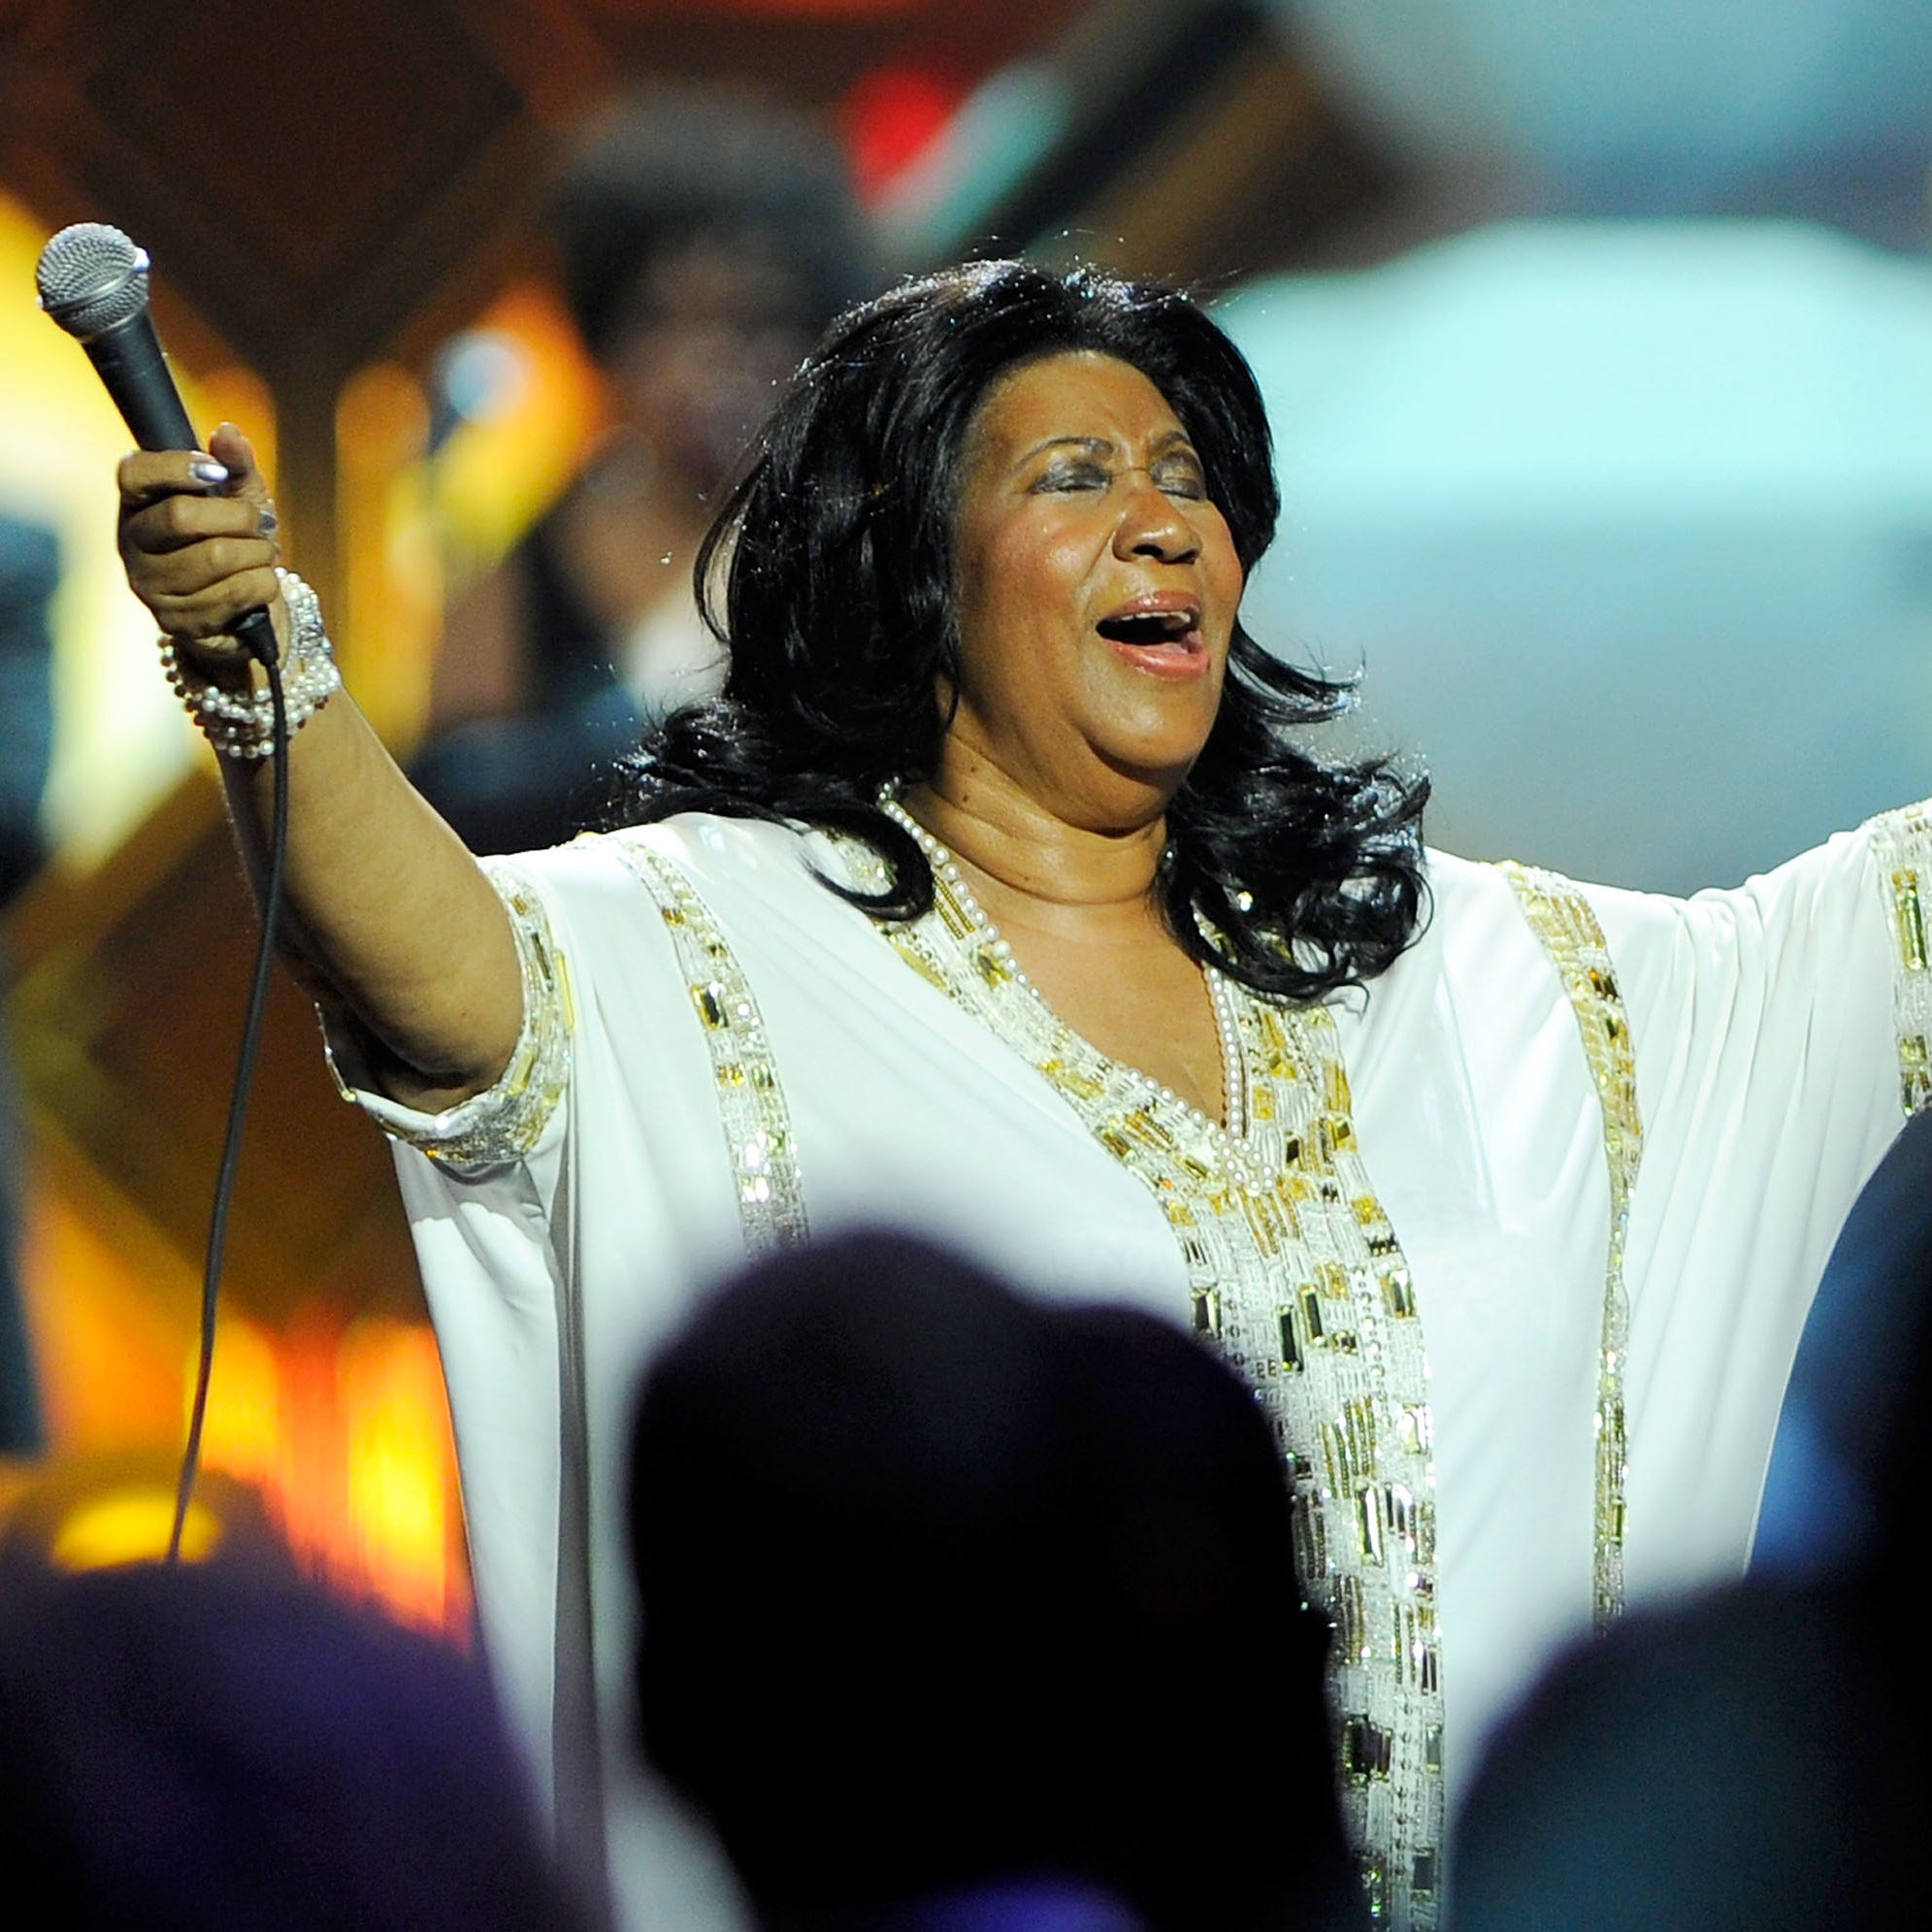 Mitch Albom: Aretha Franklin's voice will live long after her death